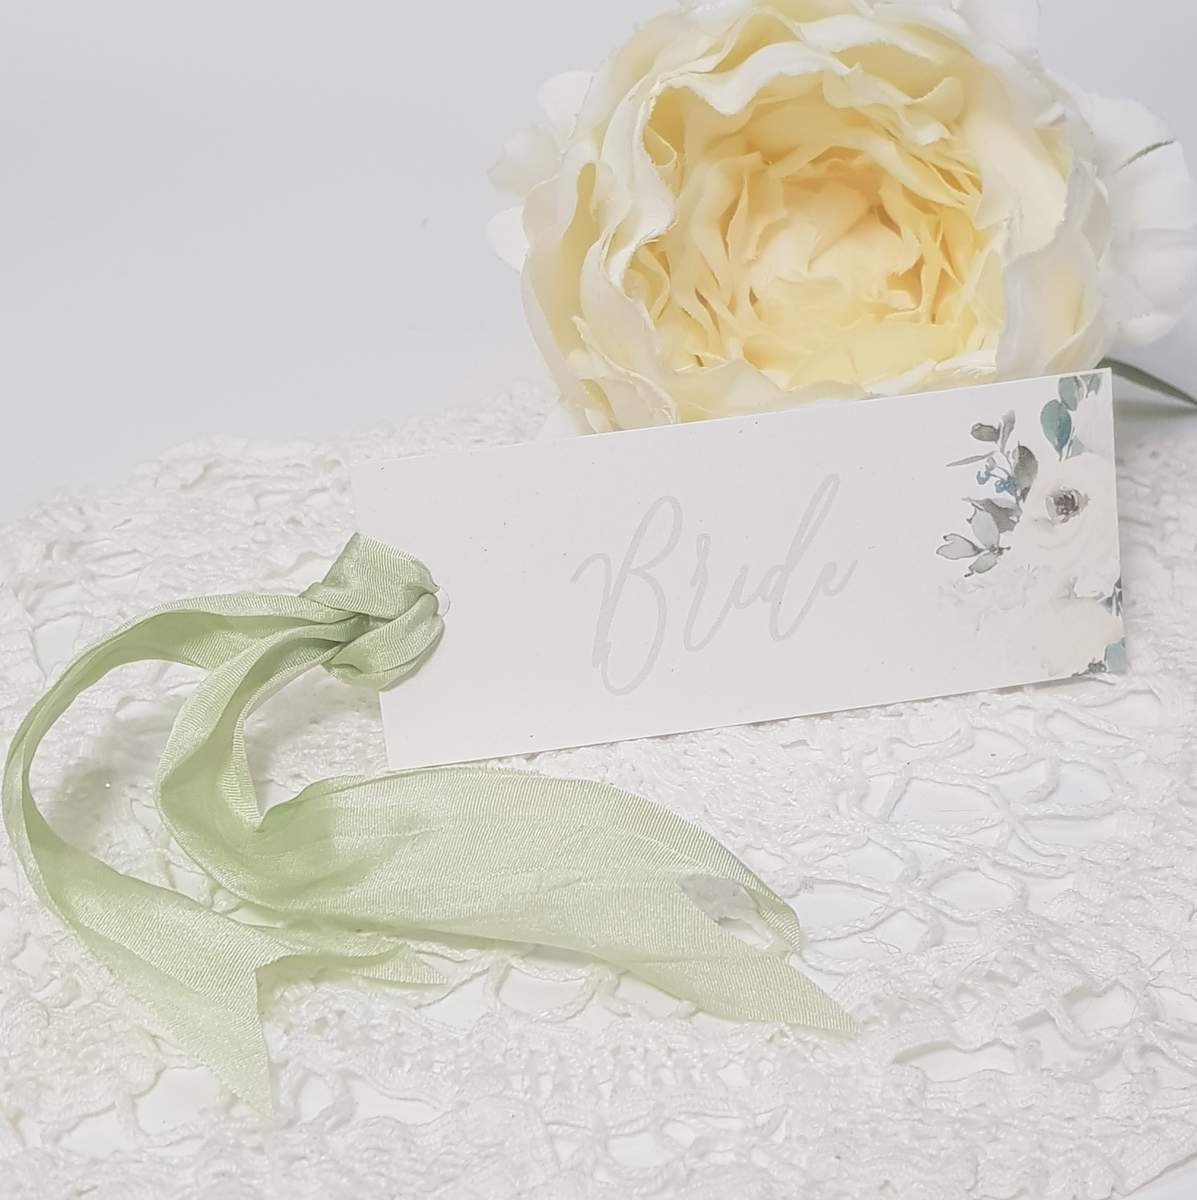 Wedding place name tag with white flowers and pale green silk ribbon